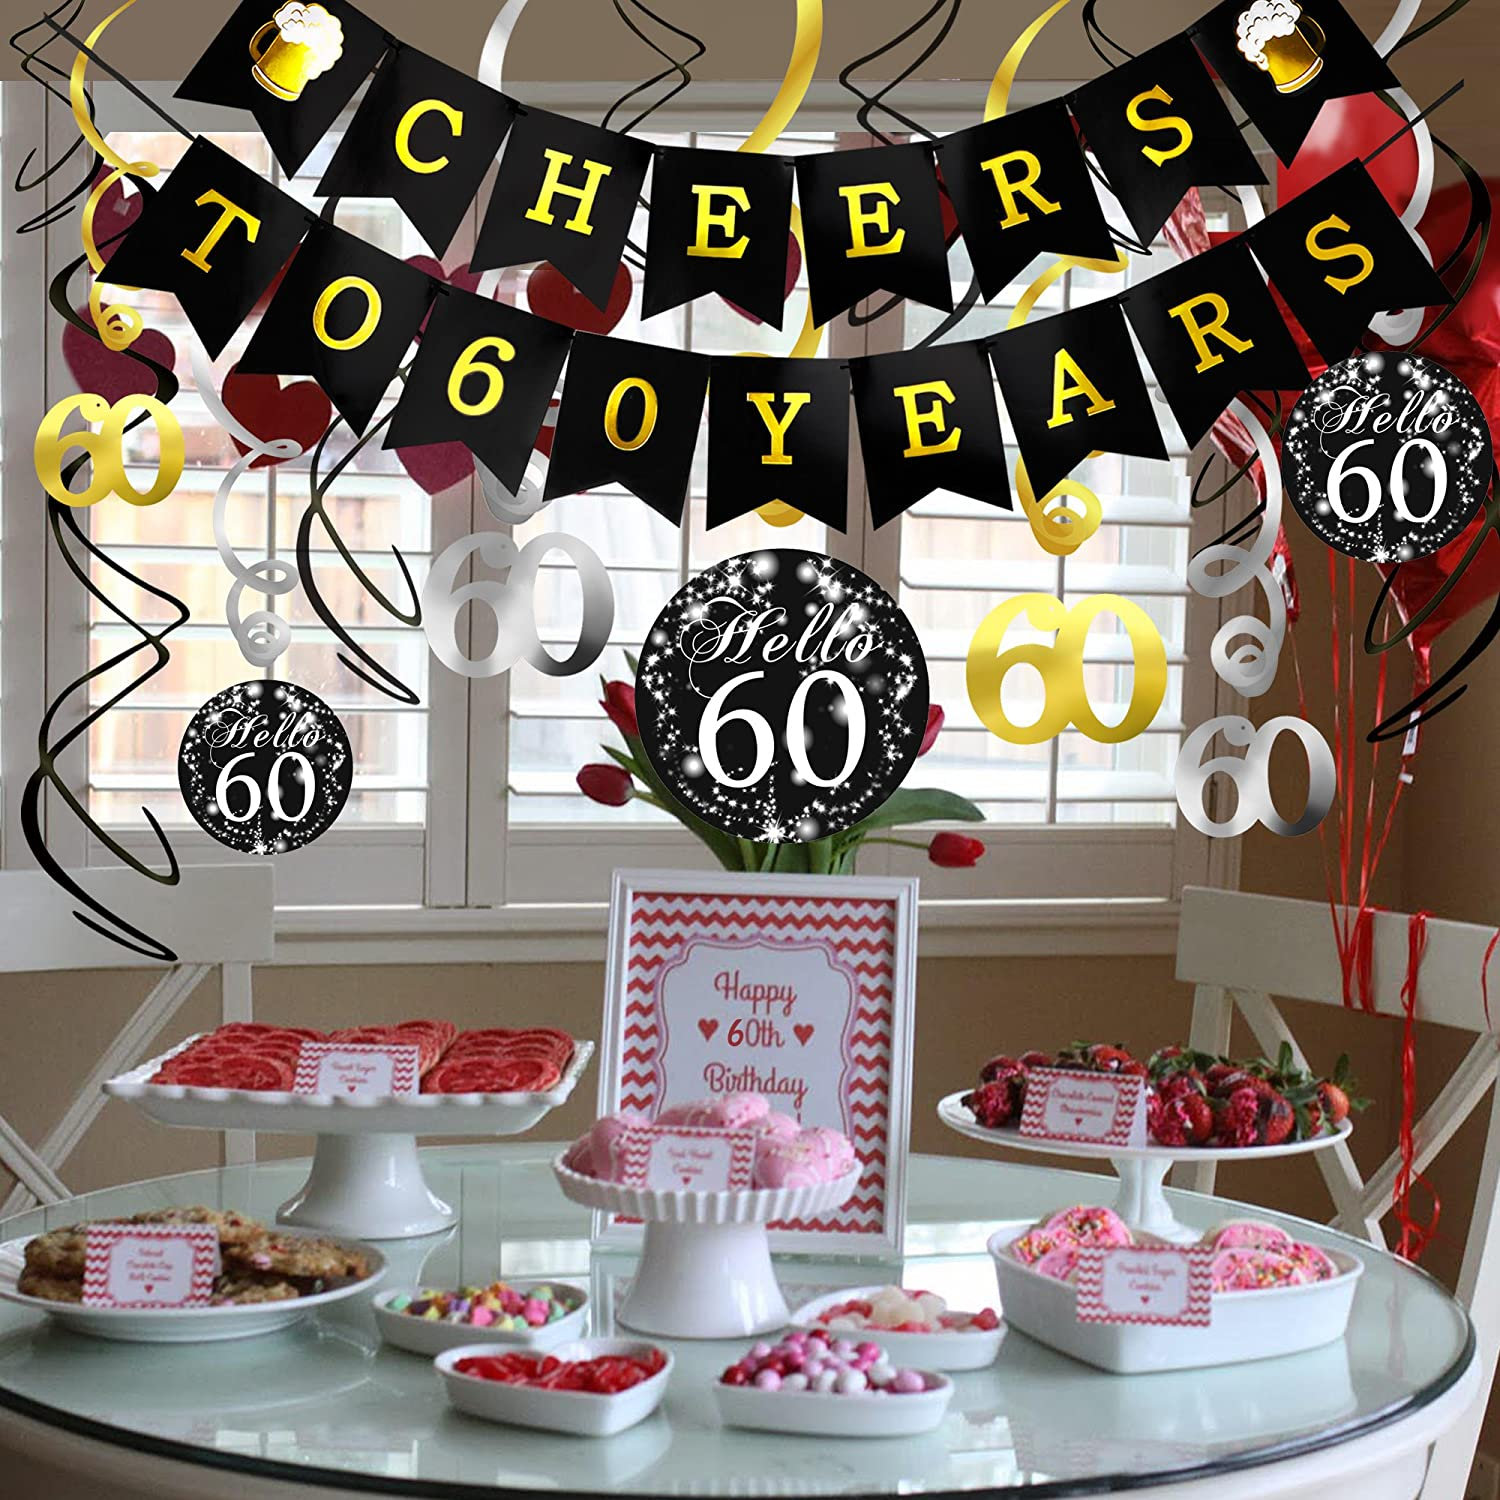 60th Birthday Decorations Kit- Konsait Cheers to 60 Years Banner Swallowtail Bunting Garland Sparkling Celebration 60 Hanging Swirls,Perfect 60 Years ...